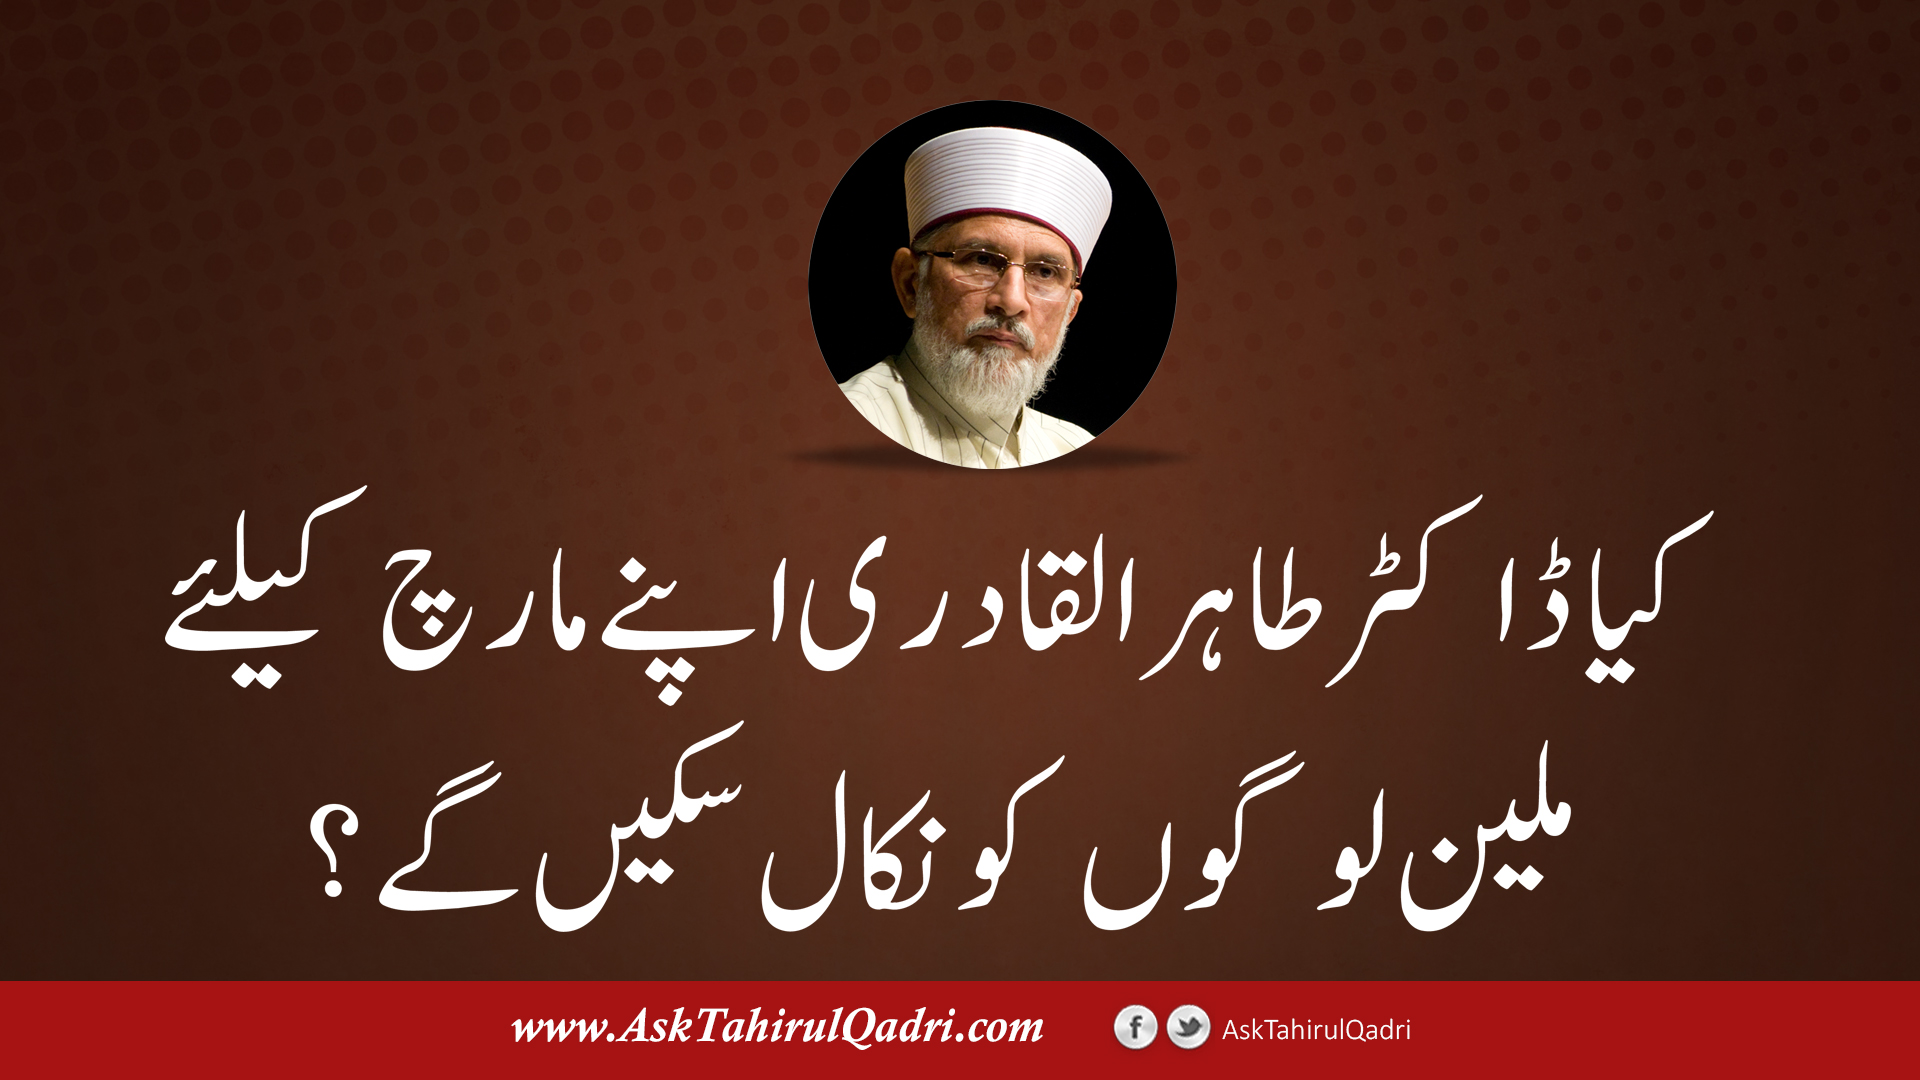 kya Dr Tahir ul Qadri apne March ke liye million logon ko nikaal saken gy?